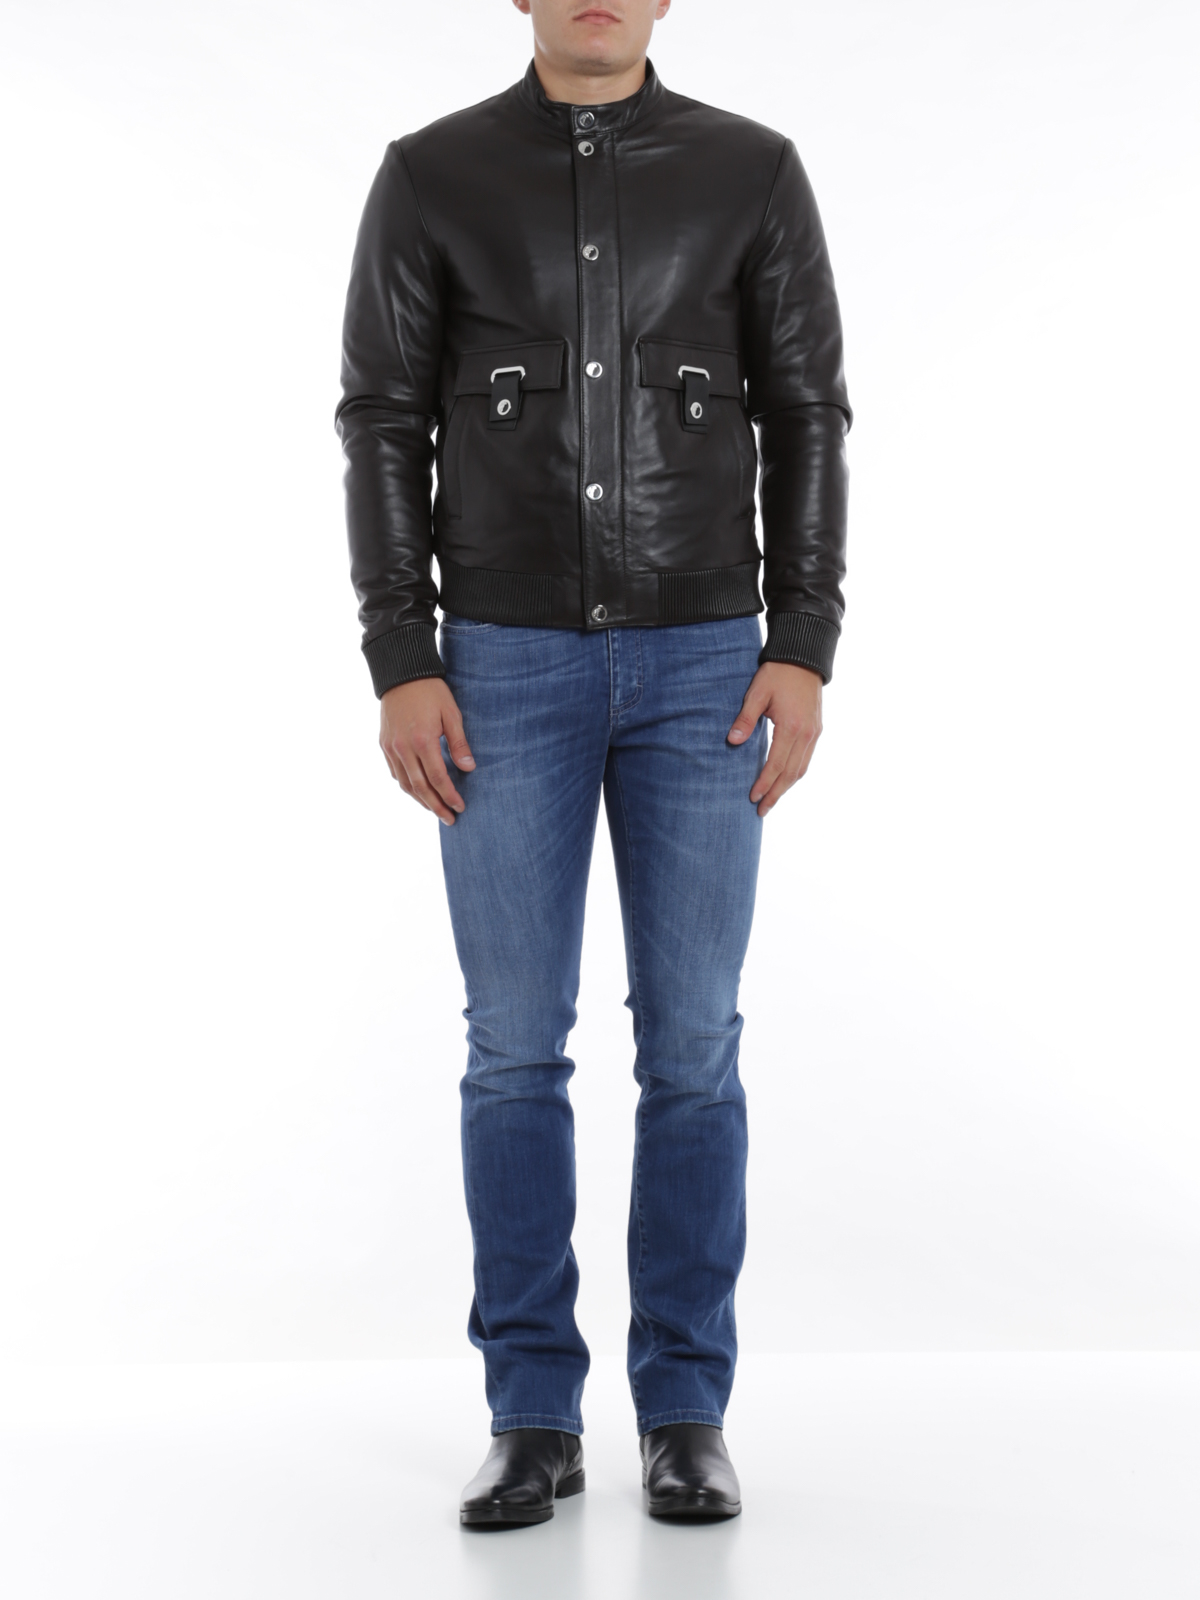 Leather jacket collection